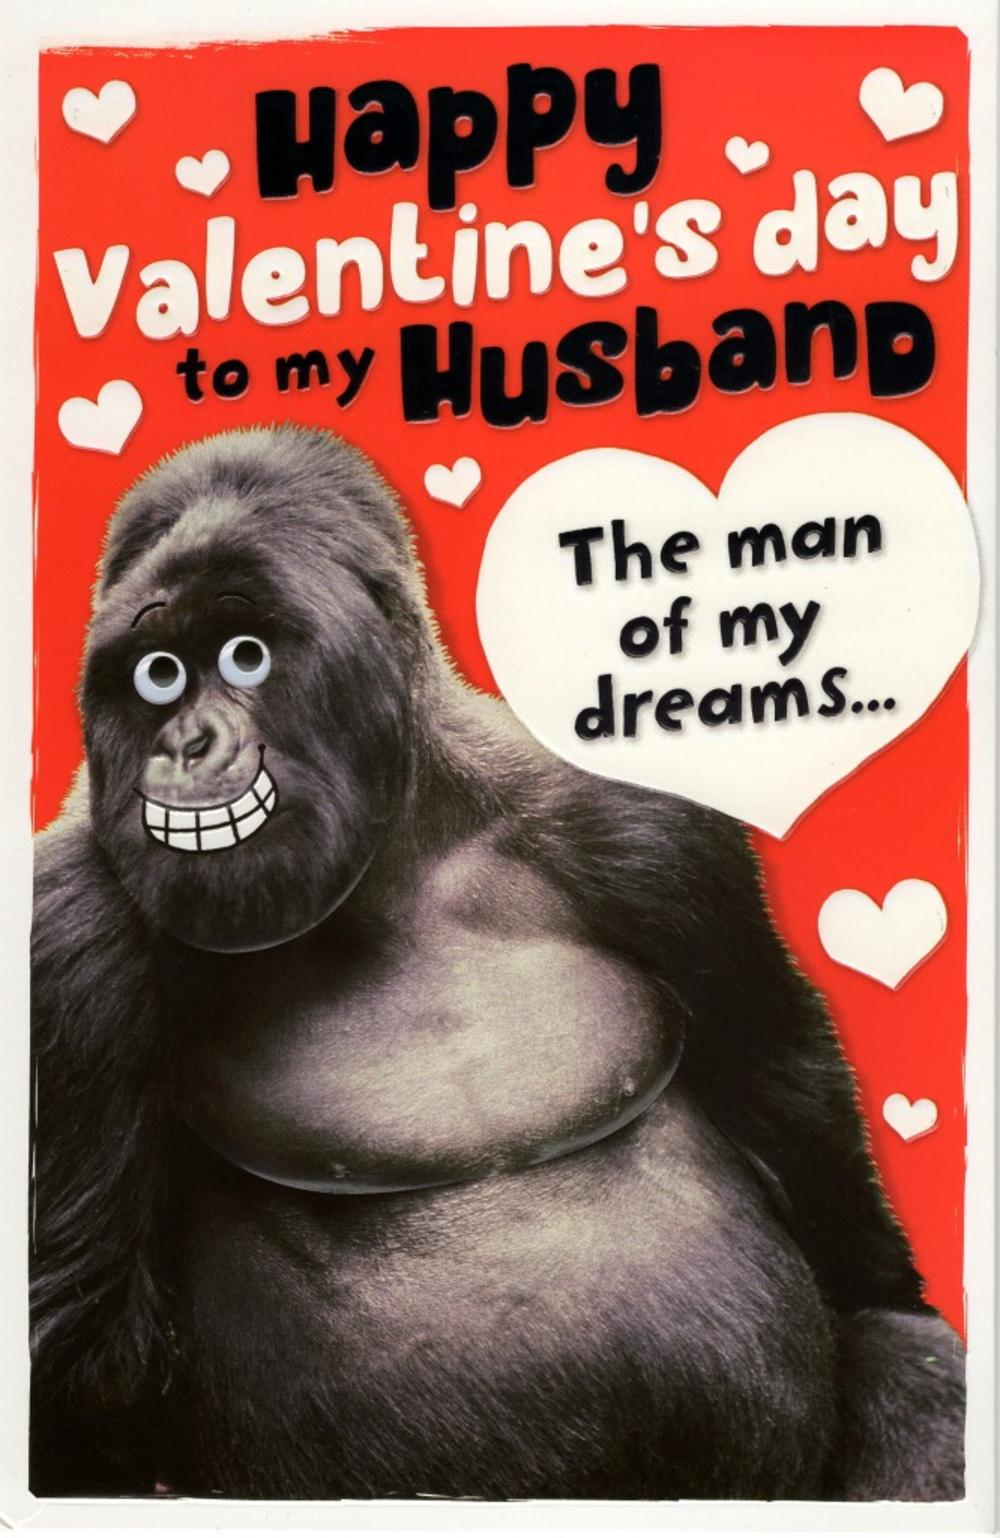 Husband Sexy Beast Valentine's Day Greeting Card